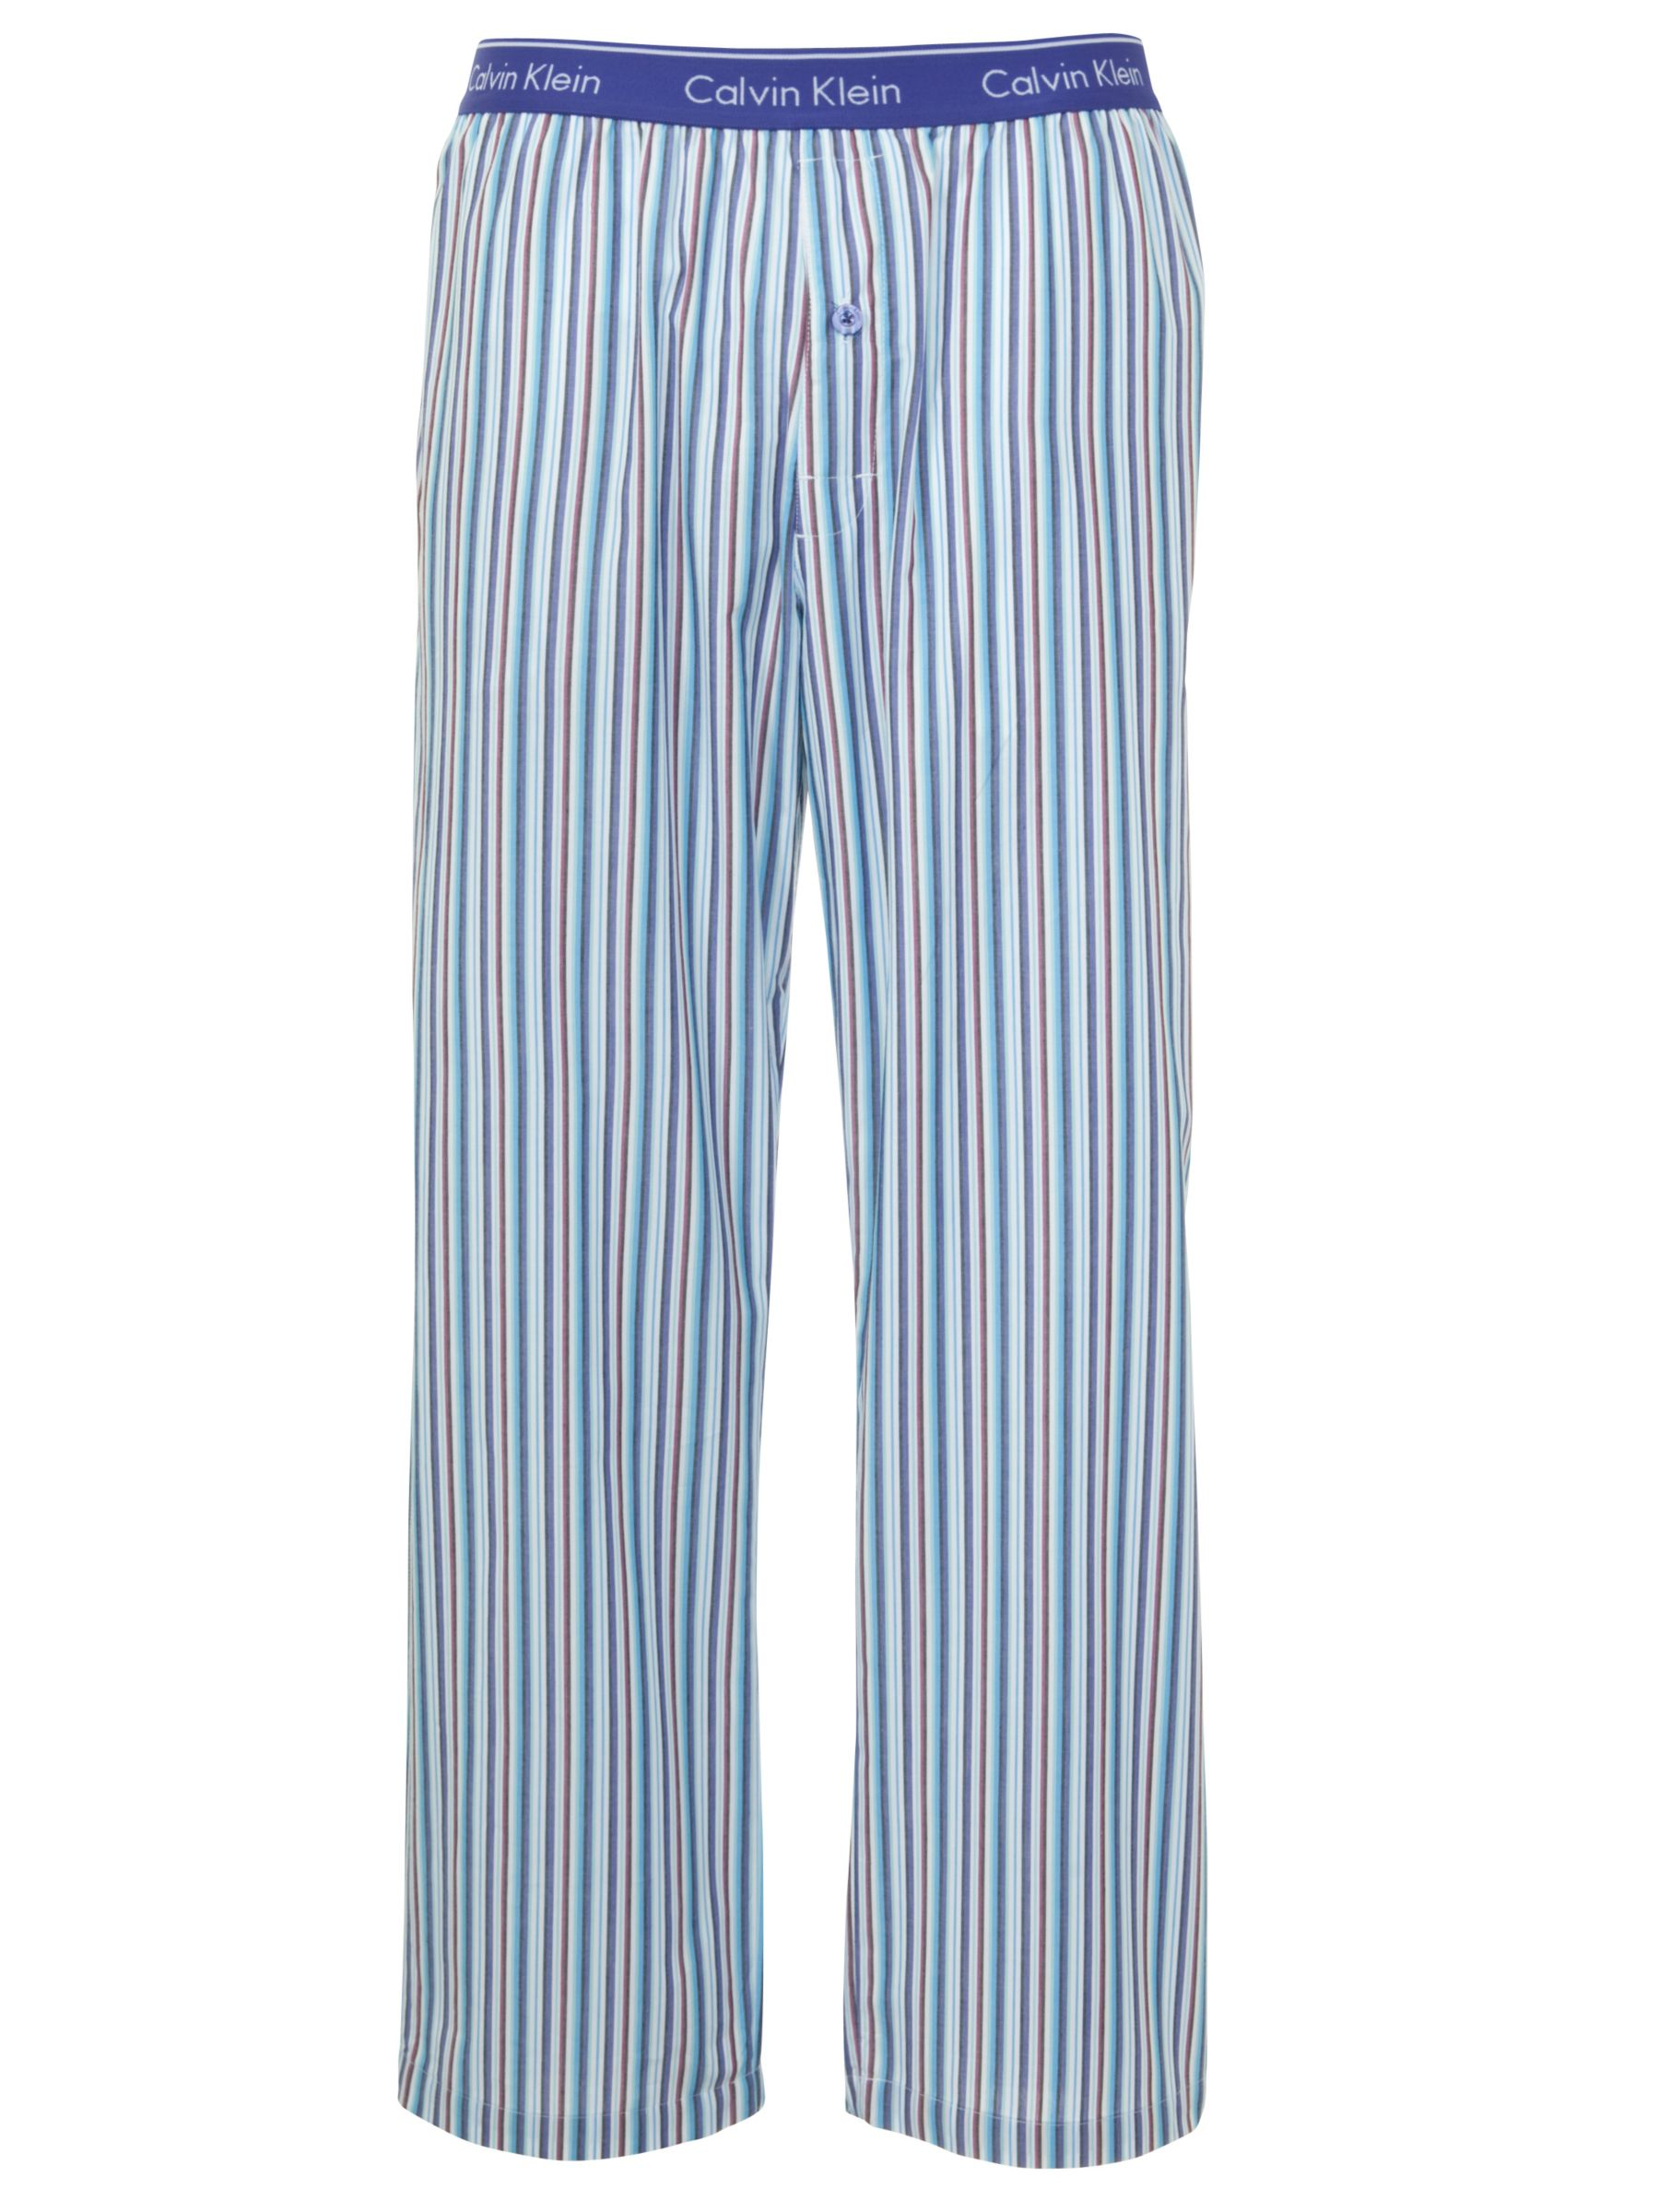 Calvin Klein Underwear Traditional Blue Stripe Lounge Pants